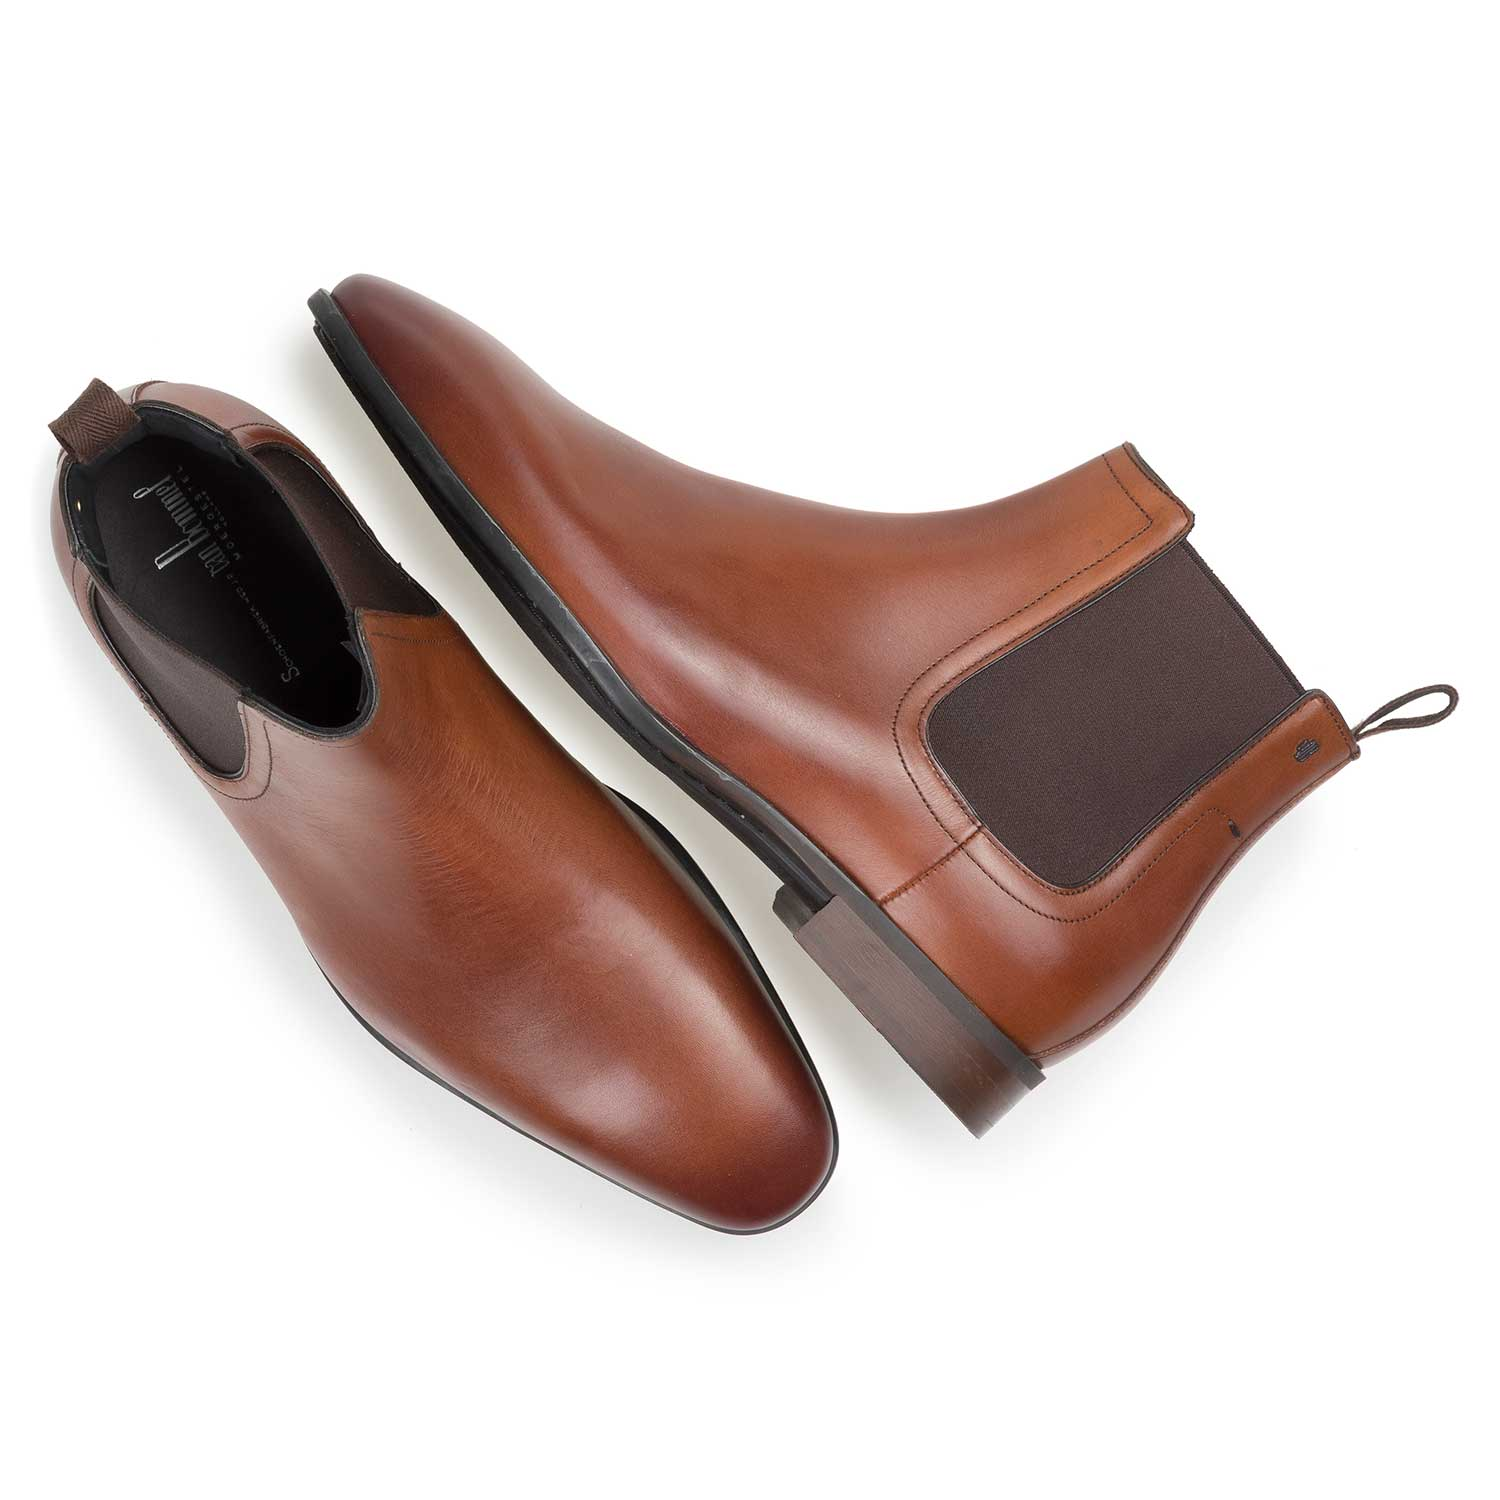 10342/03 - Cognac-coloured calf leather Chelsea boot